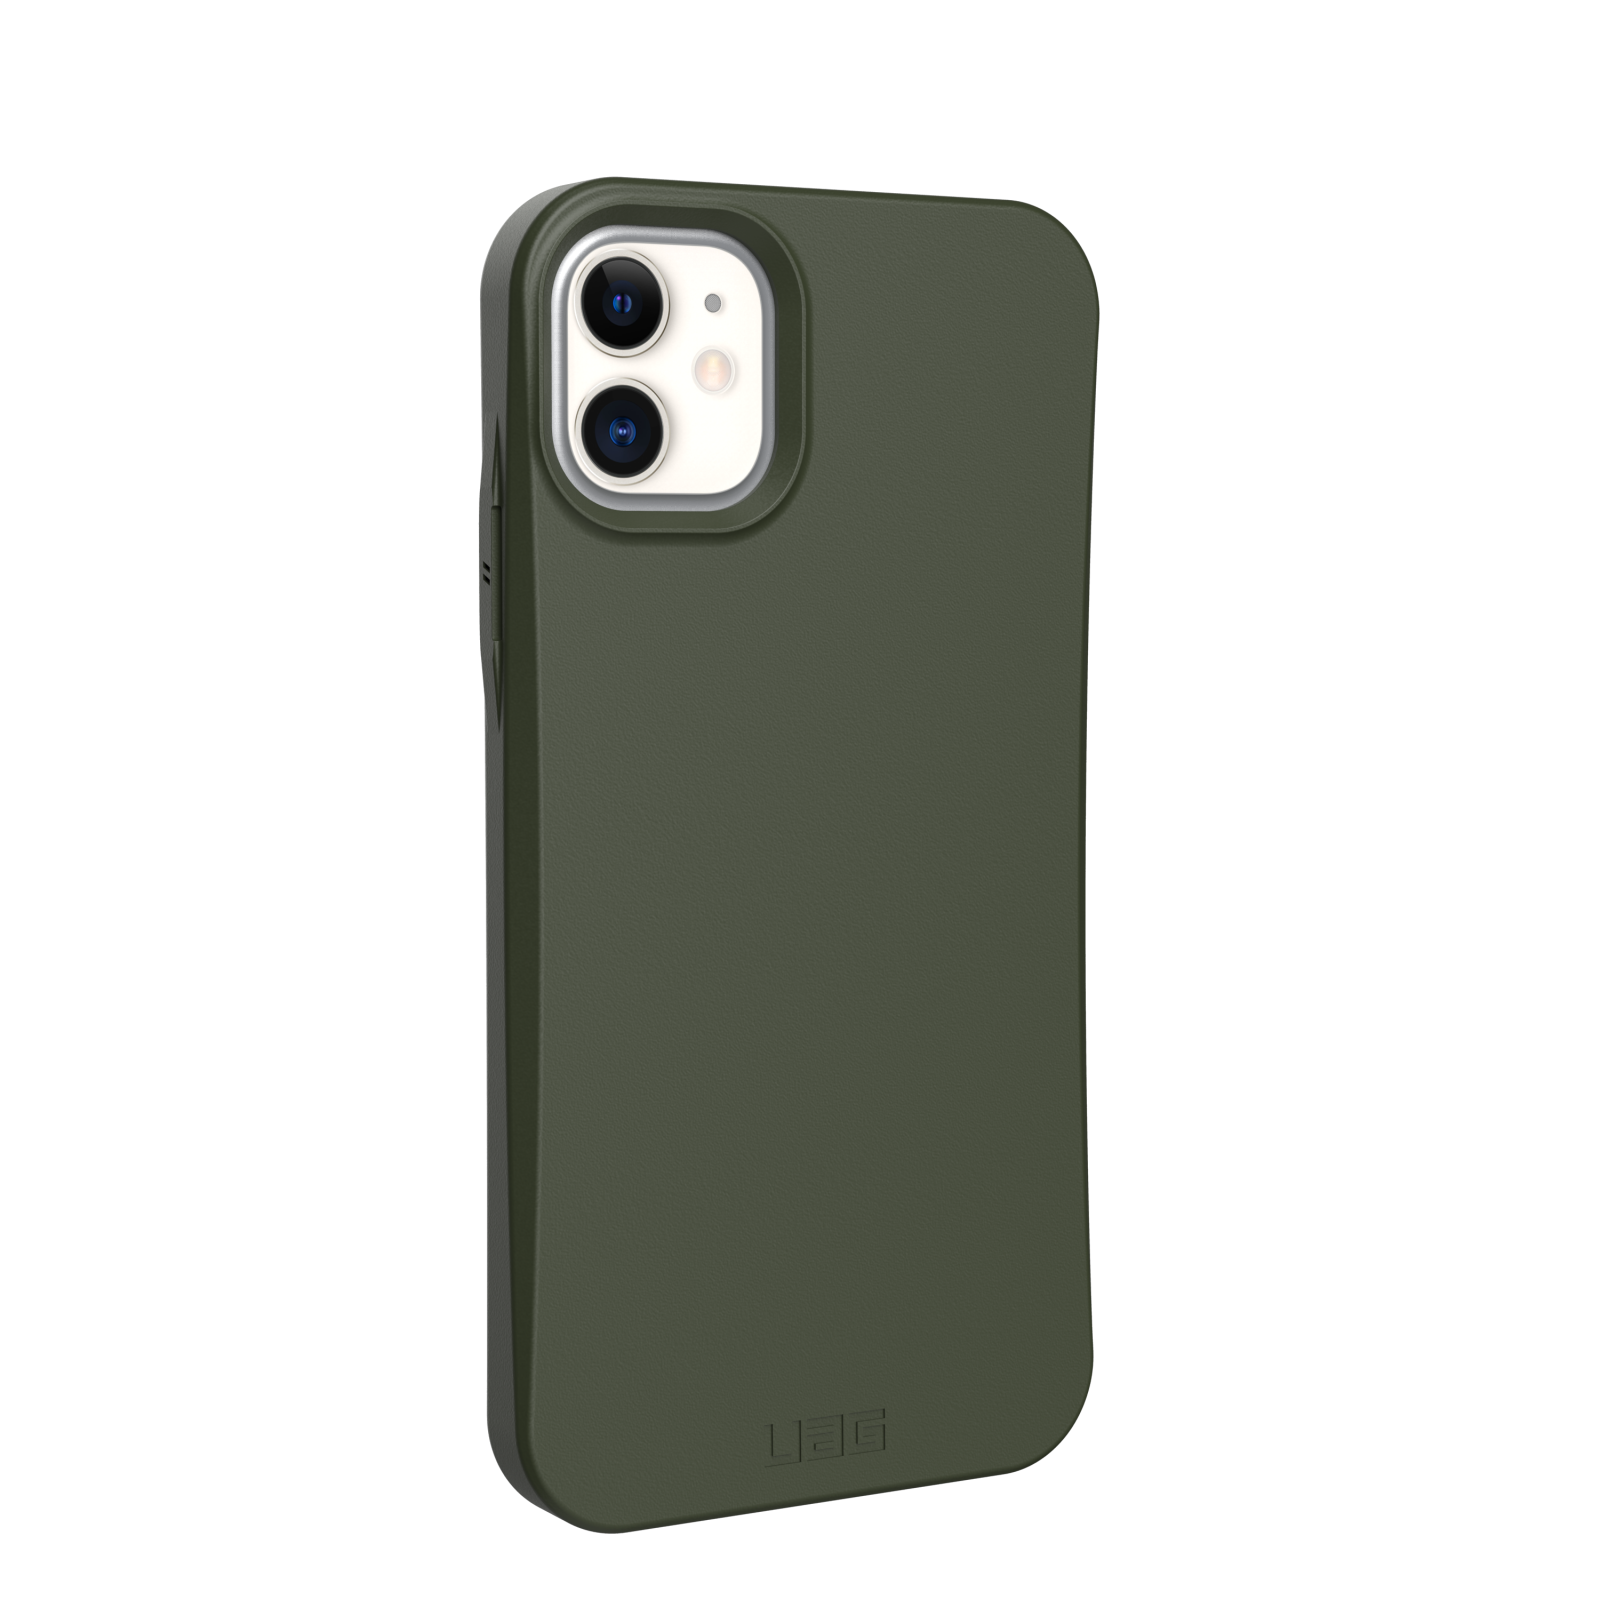 Ốp Lưng UAG OutBack Cho iPhone 11 ( 6.1inch ) - Olive Drab